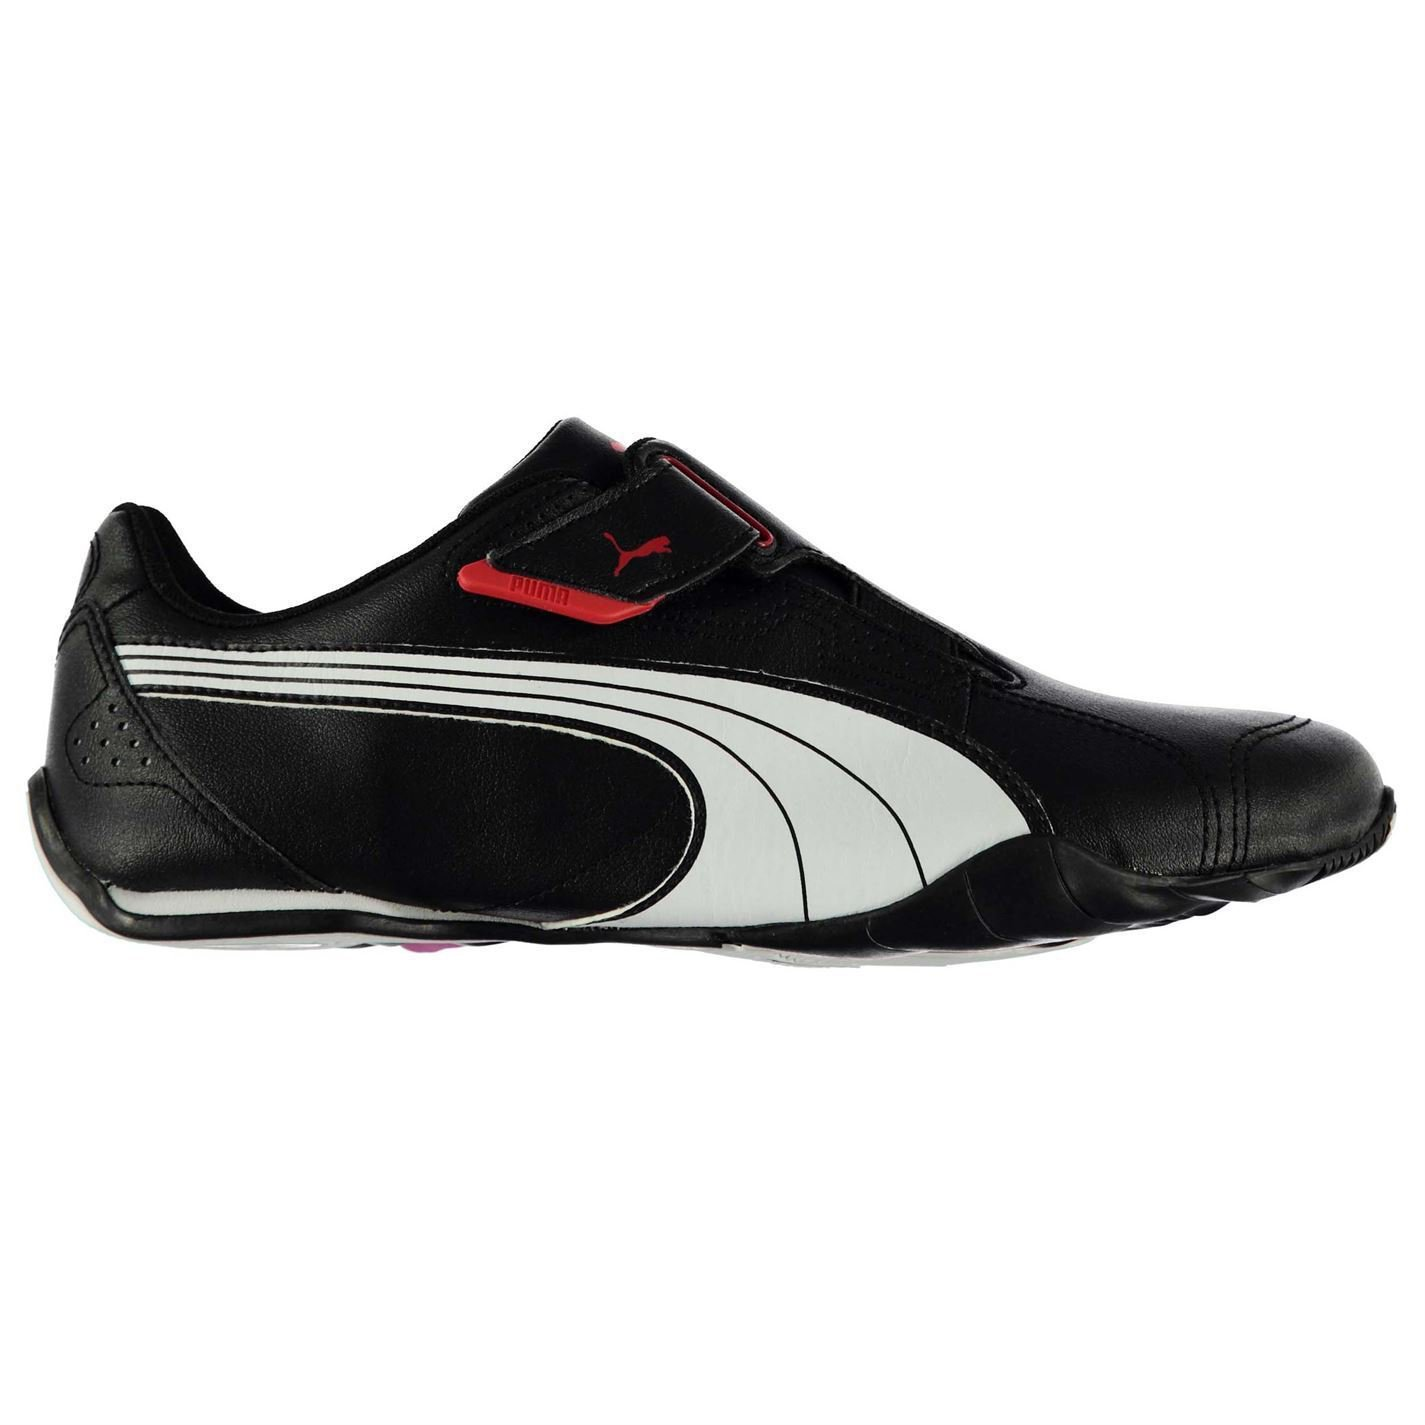 Puma Mens Redon Move Trainers Casual Sports Shoes Footwear